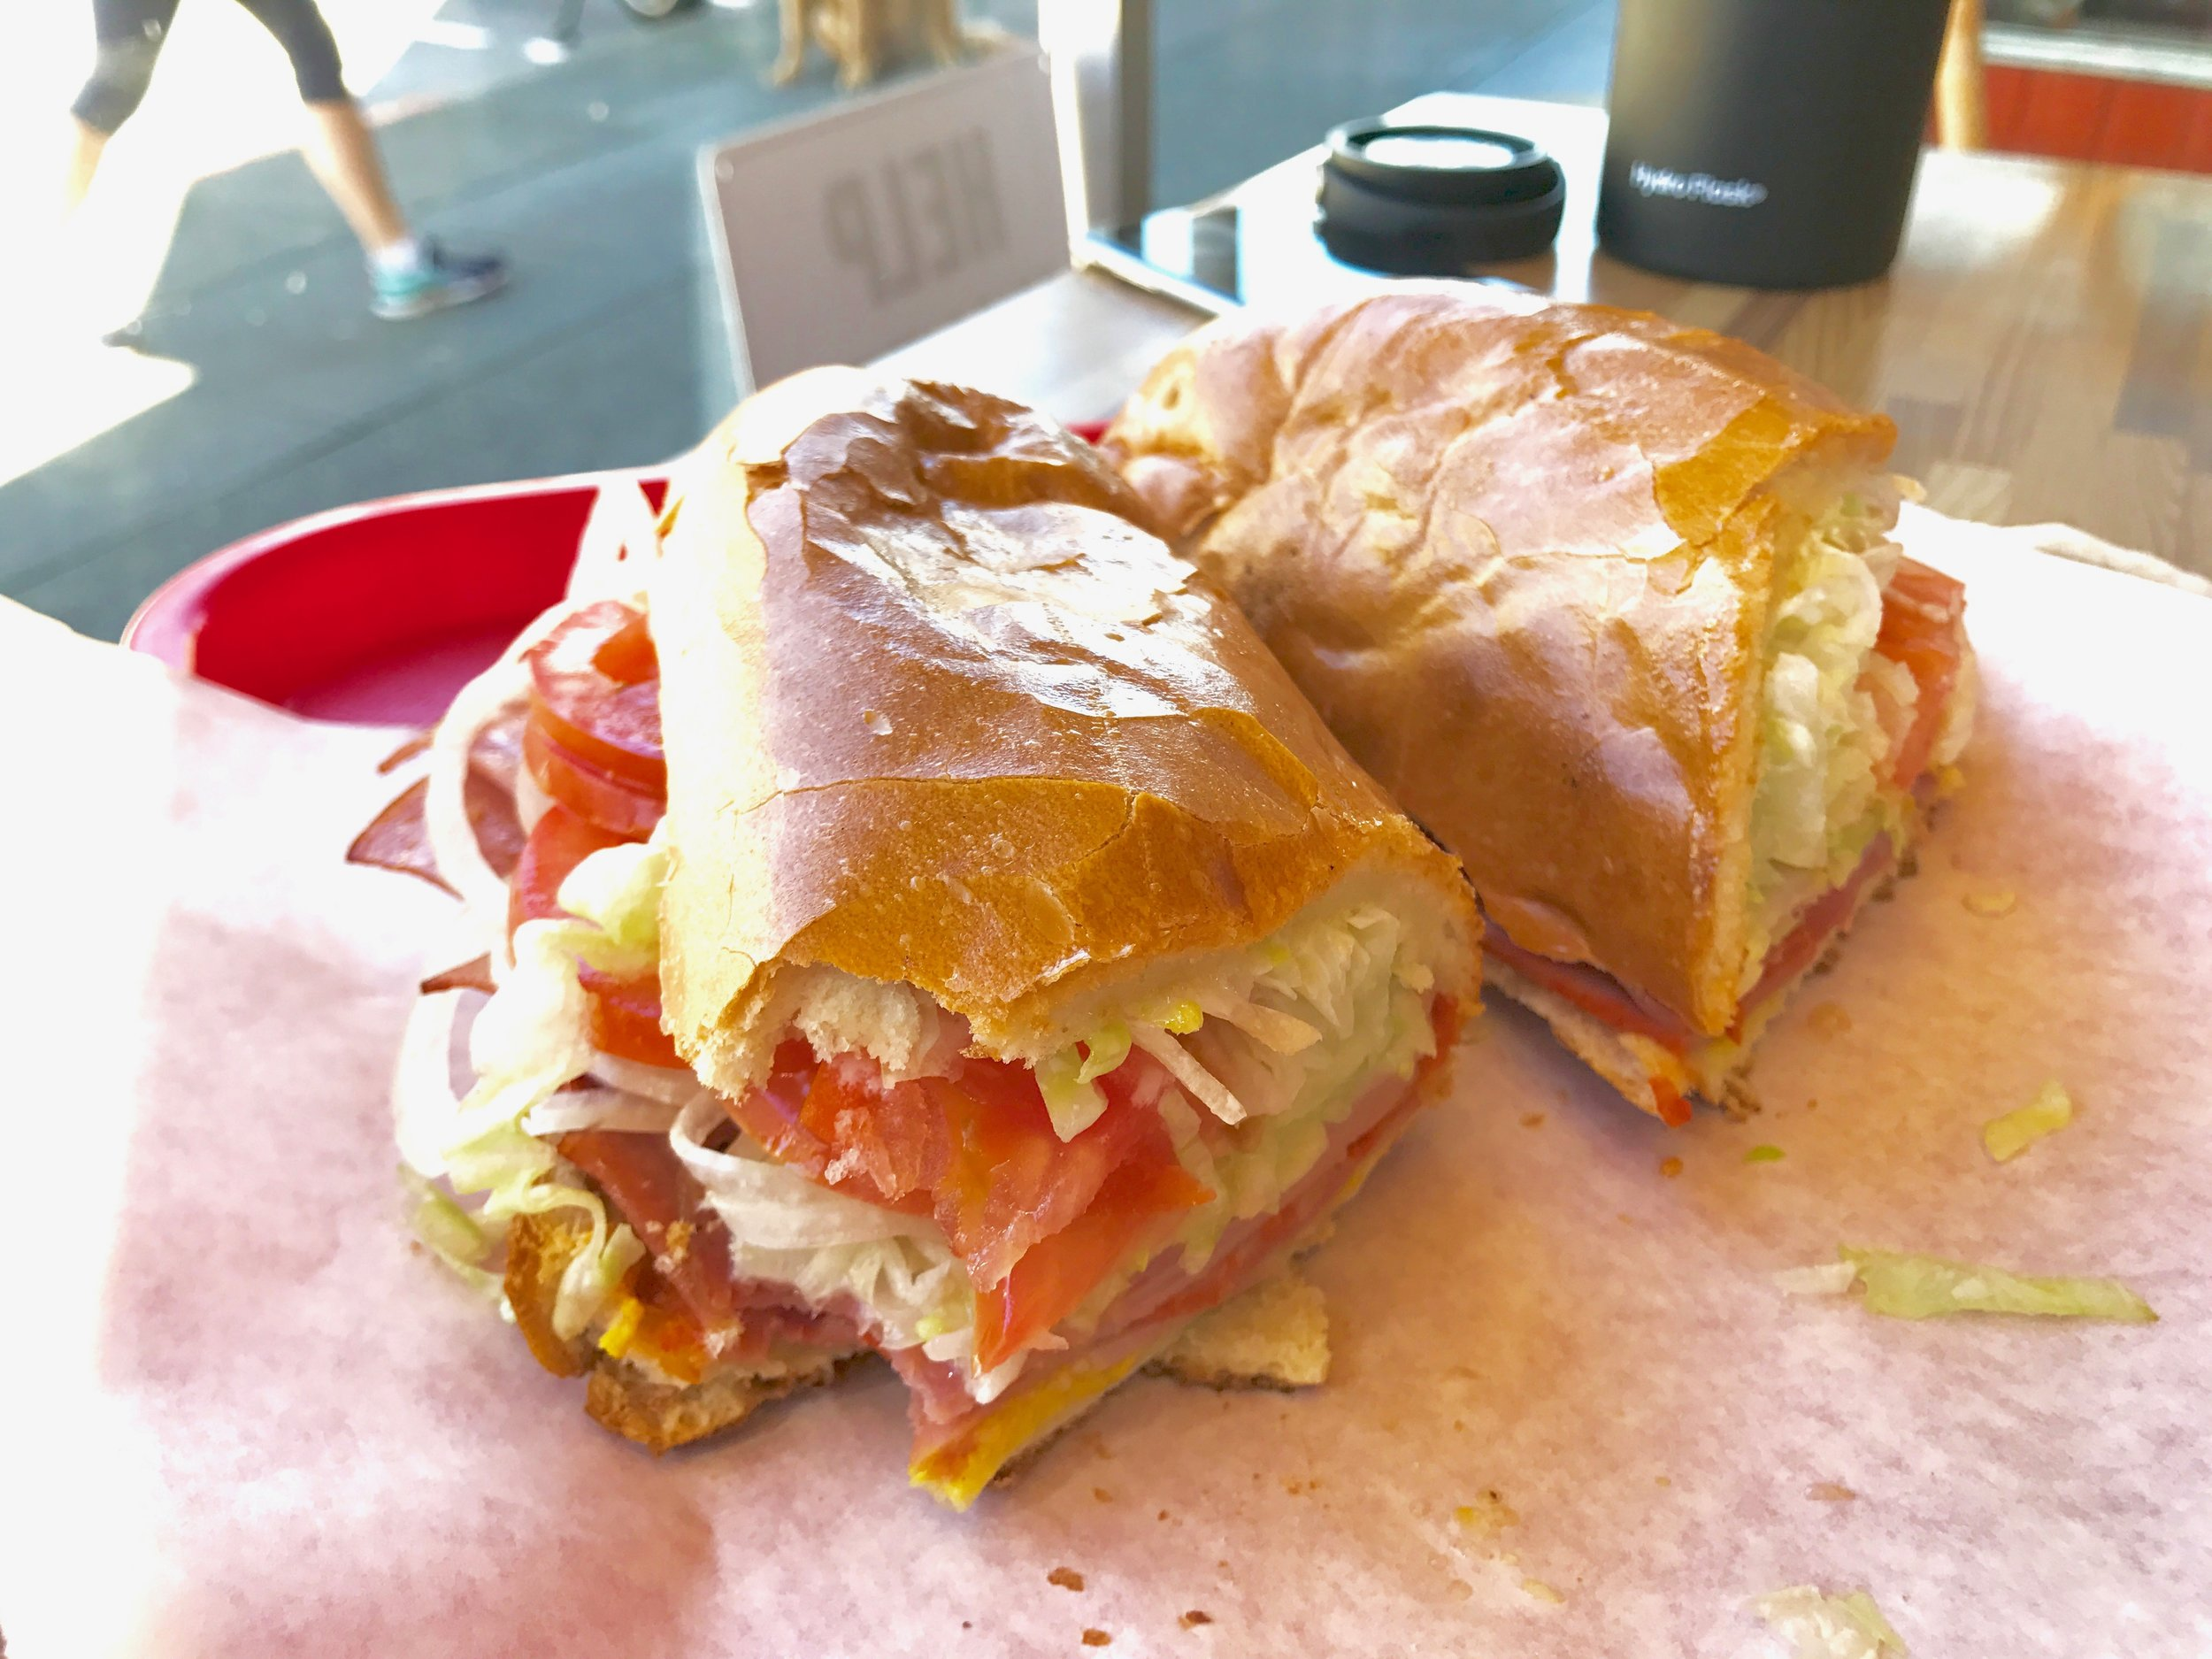 The Italiano:think salami, turkey, mortadella, thinly sliced onions, tomatoes, lettuce, mayo, lettuce, secret sauce all inside a perfectly toasted bread with melted cheese